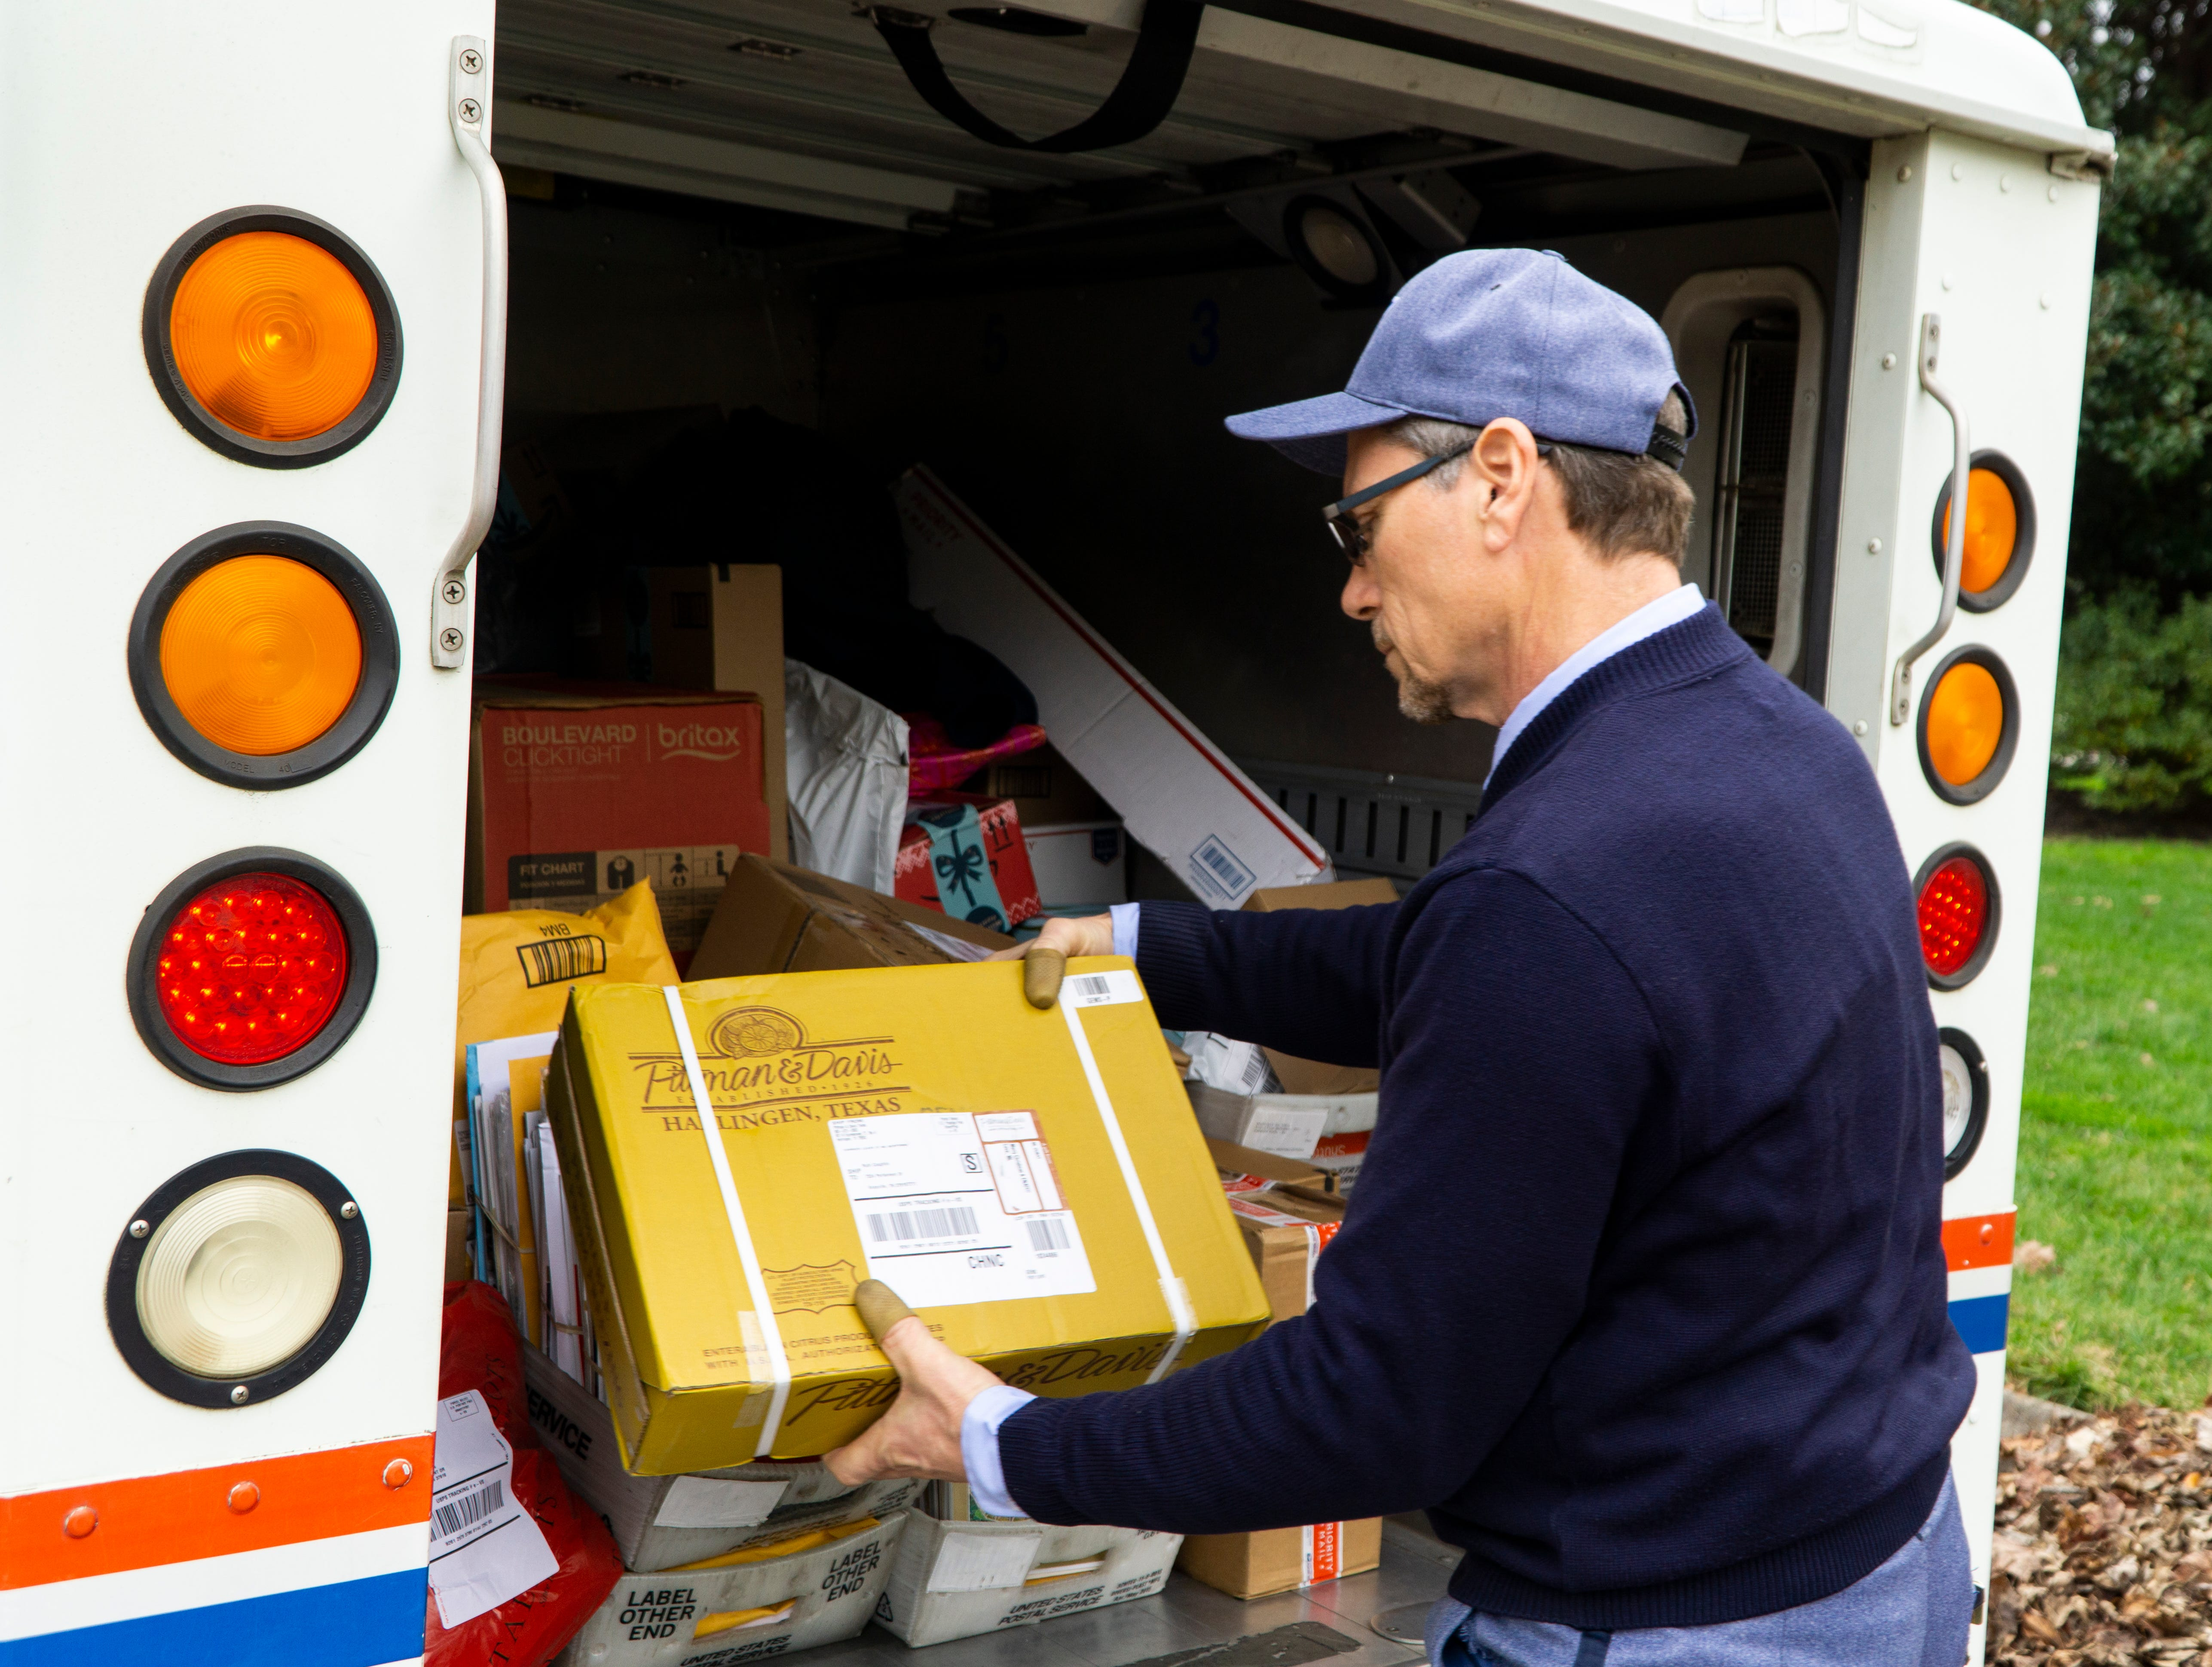 Bryan Lay checks the delivery address while delivering a package on Friday, Dec. 7. Incorrect addresses are some of the most frequent causes of delivery delays during the holiday season.